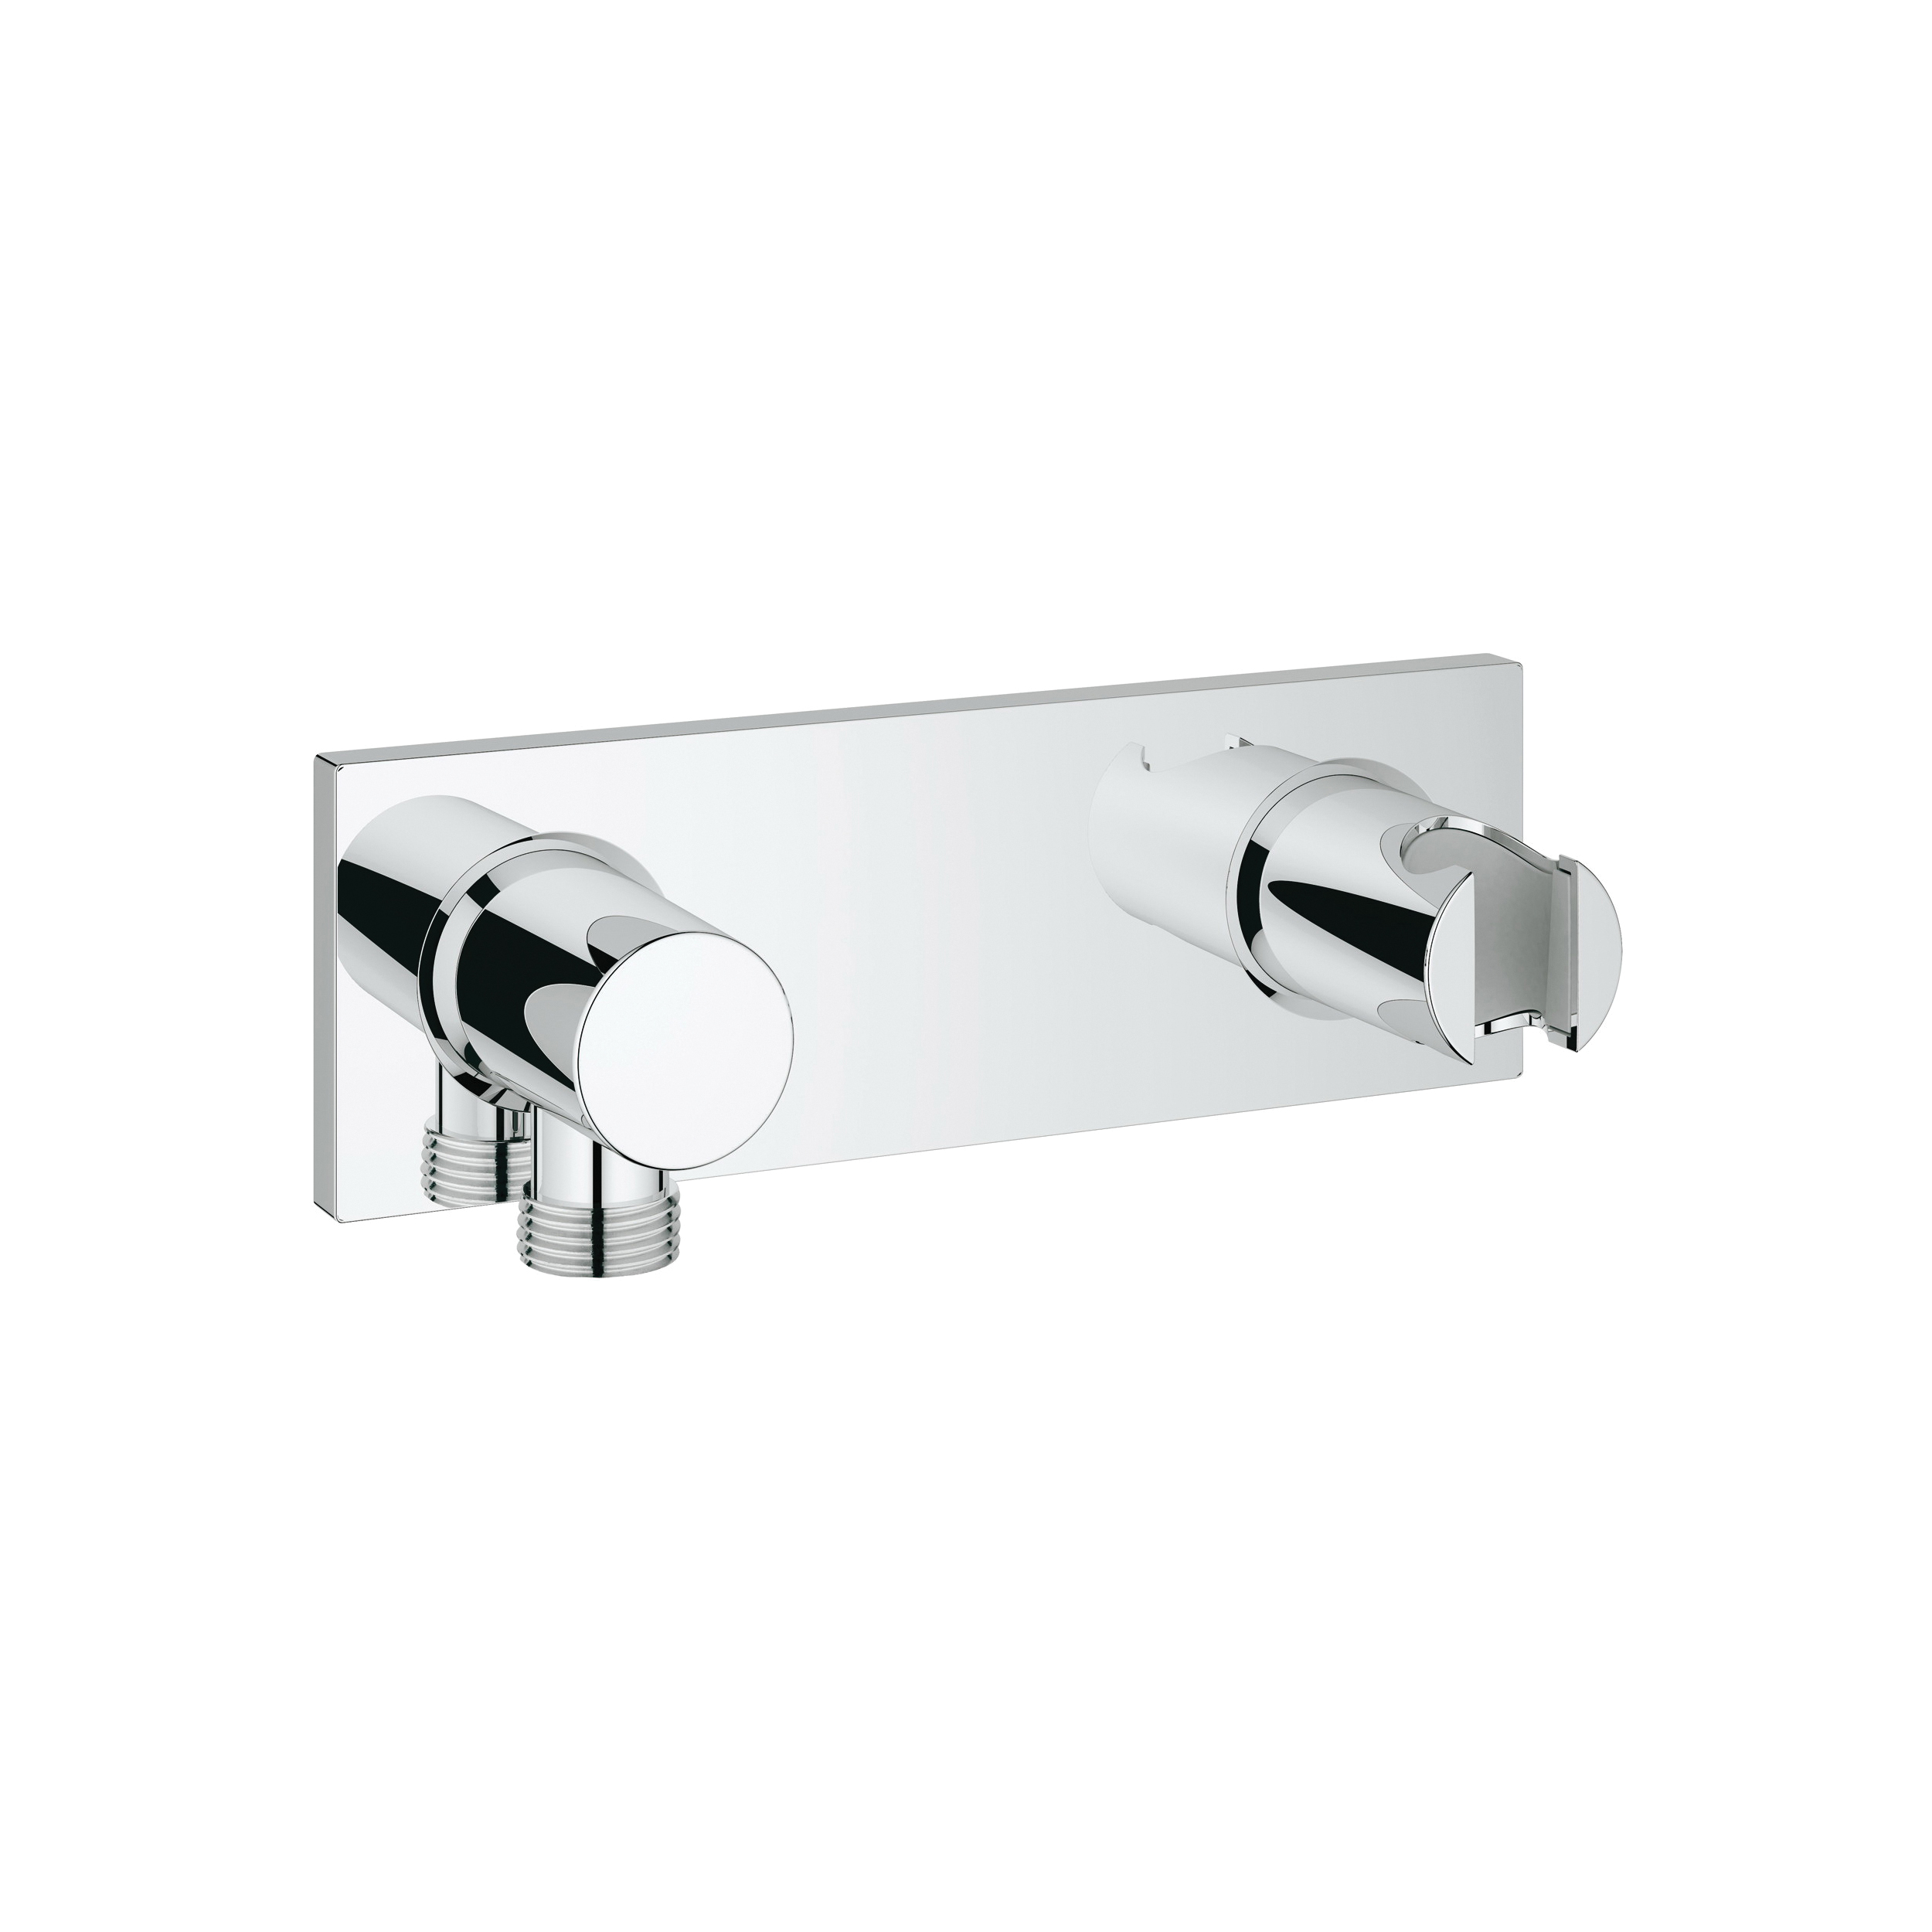 GROHE 27621000 Grohtherm F Wall Union With Intergrated Hand Shower Holder, 1/2 in, MNPT x FNPT, Brass, Import